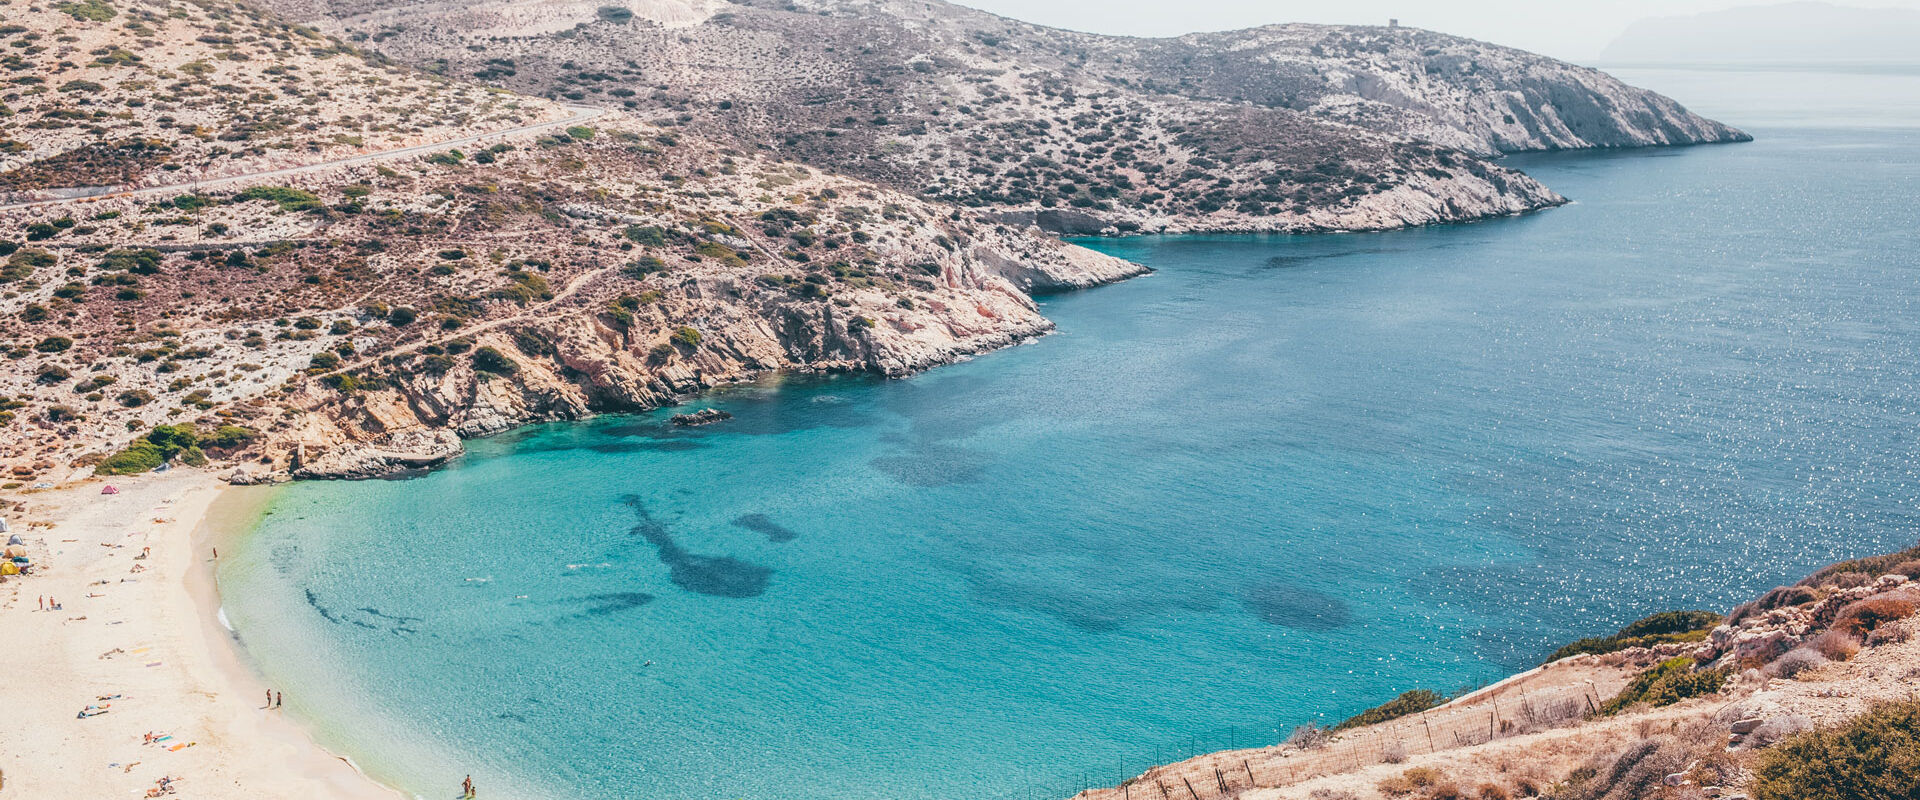 Island Hopping To The Cyclades From Naxos Travel Ideas